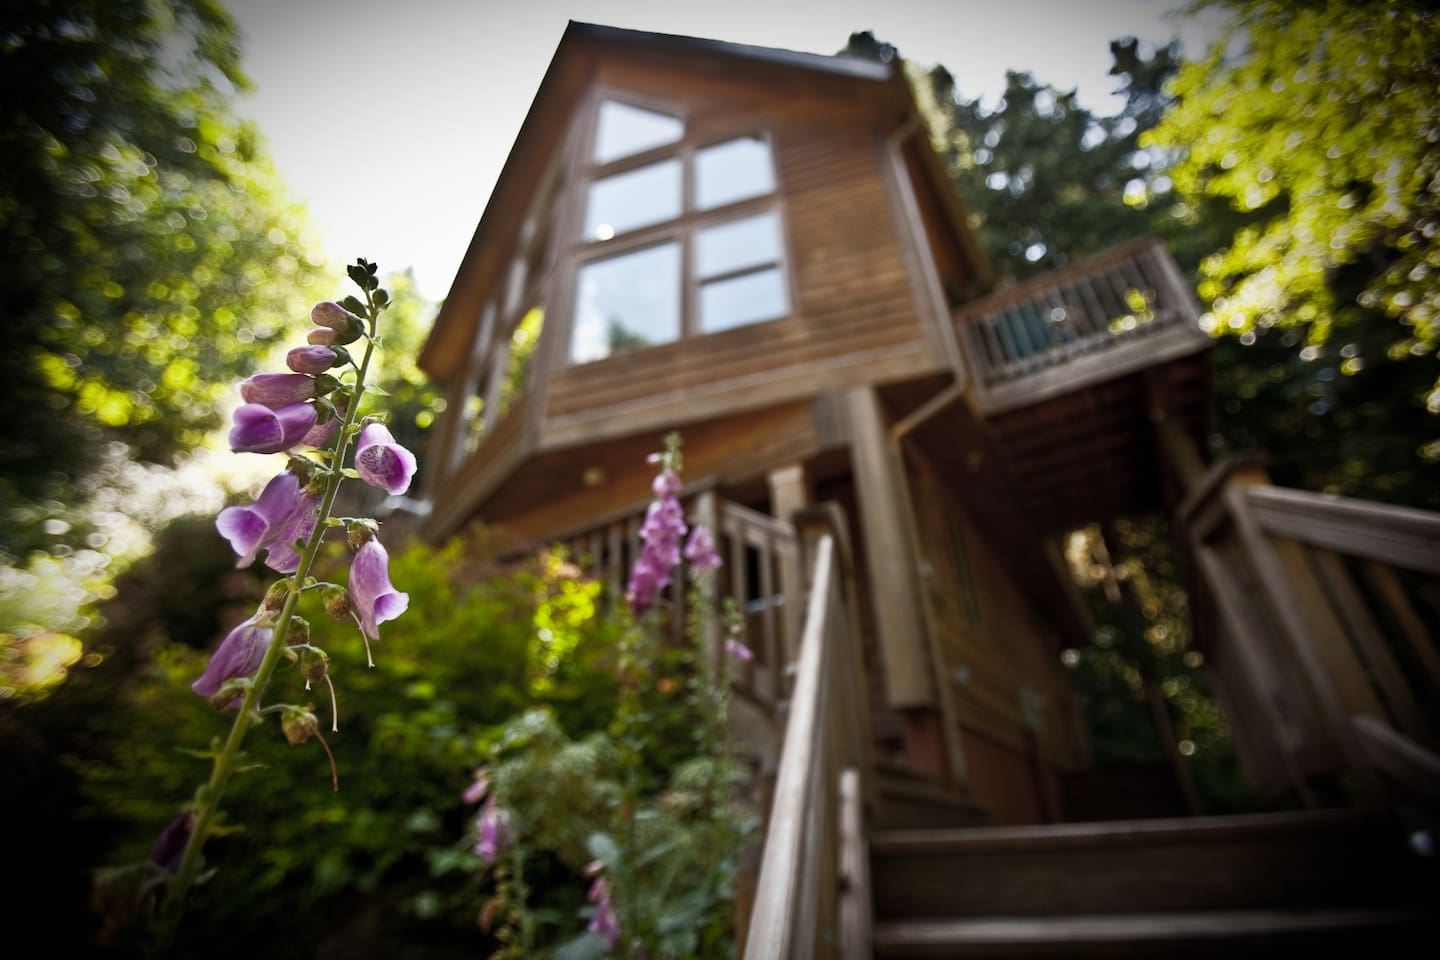 Welcome to the Huckleberry Chalet, a finely crafted vacation home nestled into the beautiful forested hillside of Welches, Oregon.